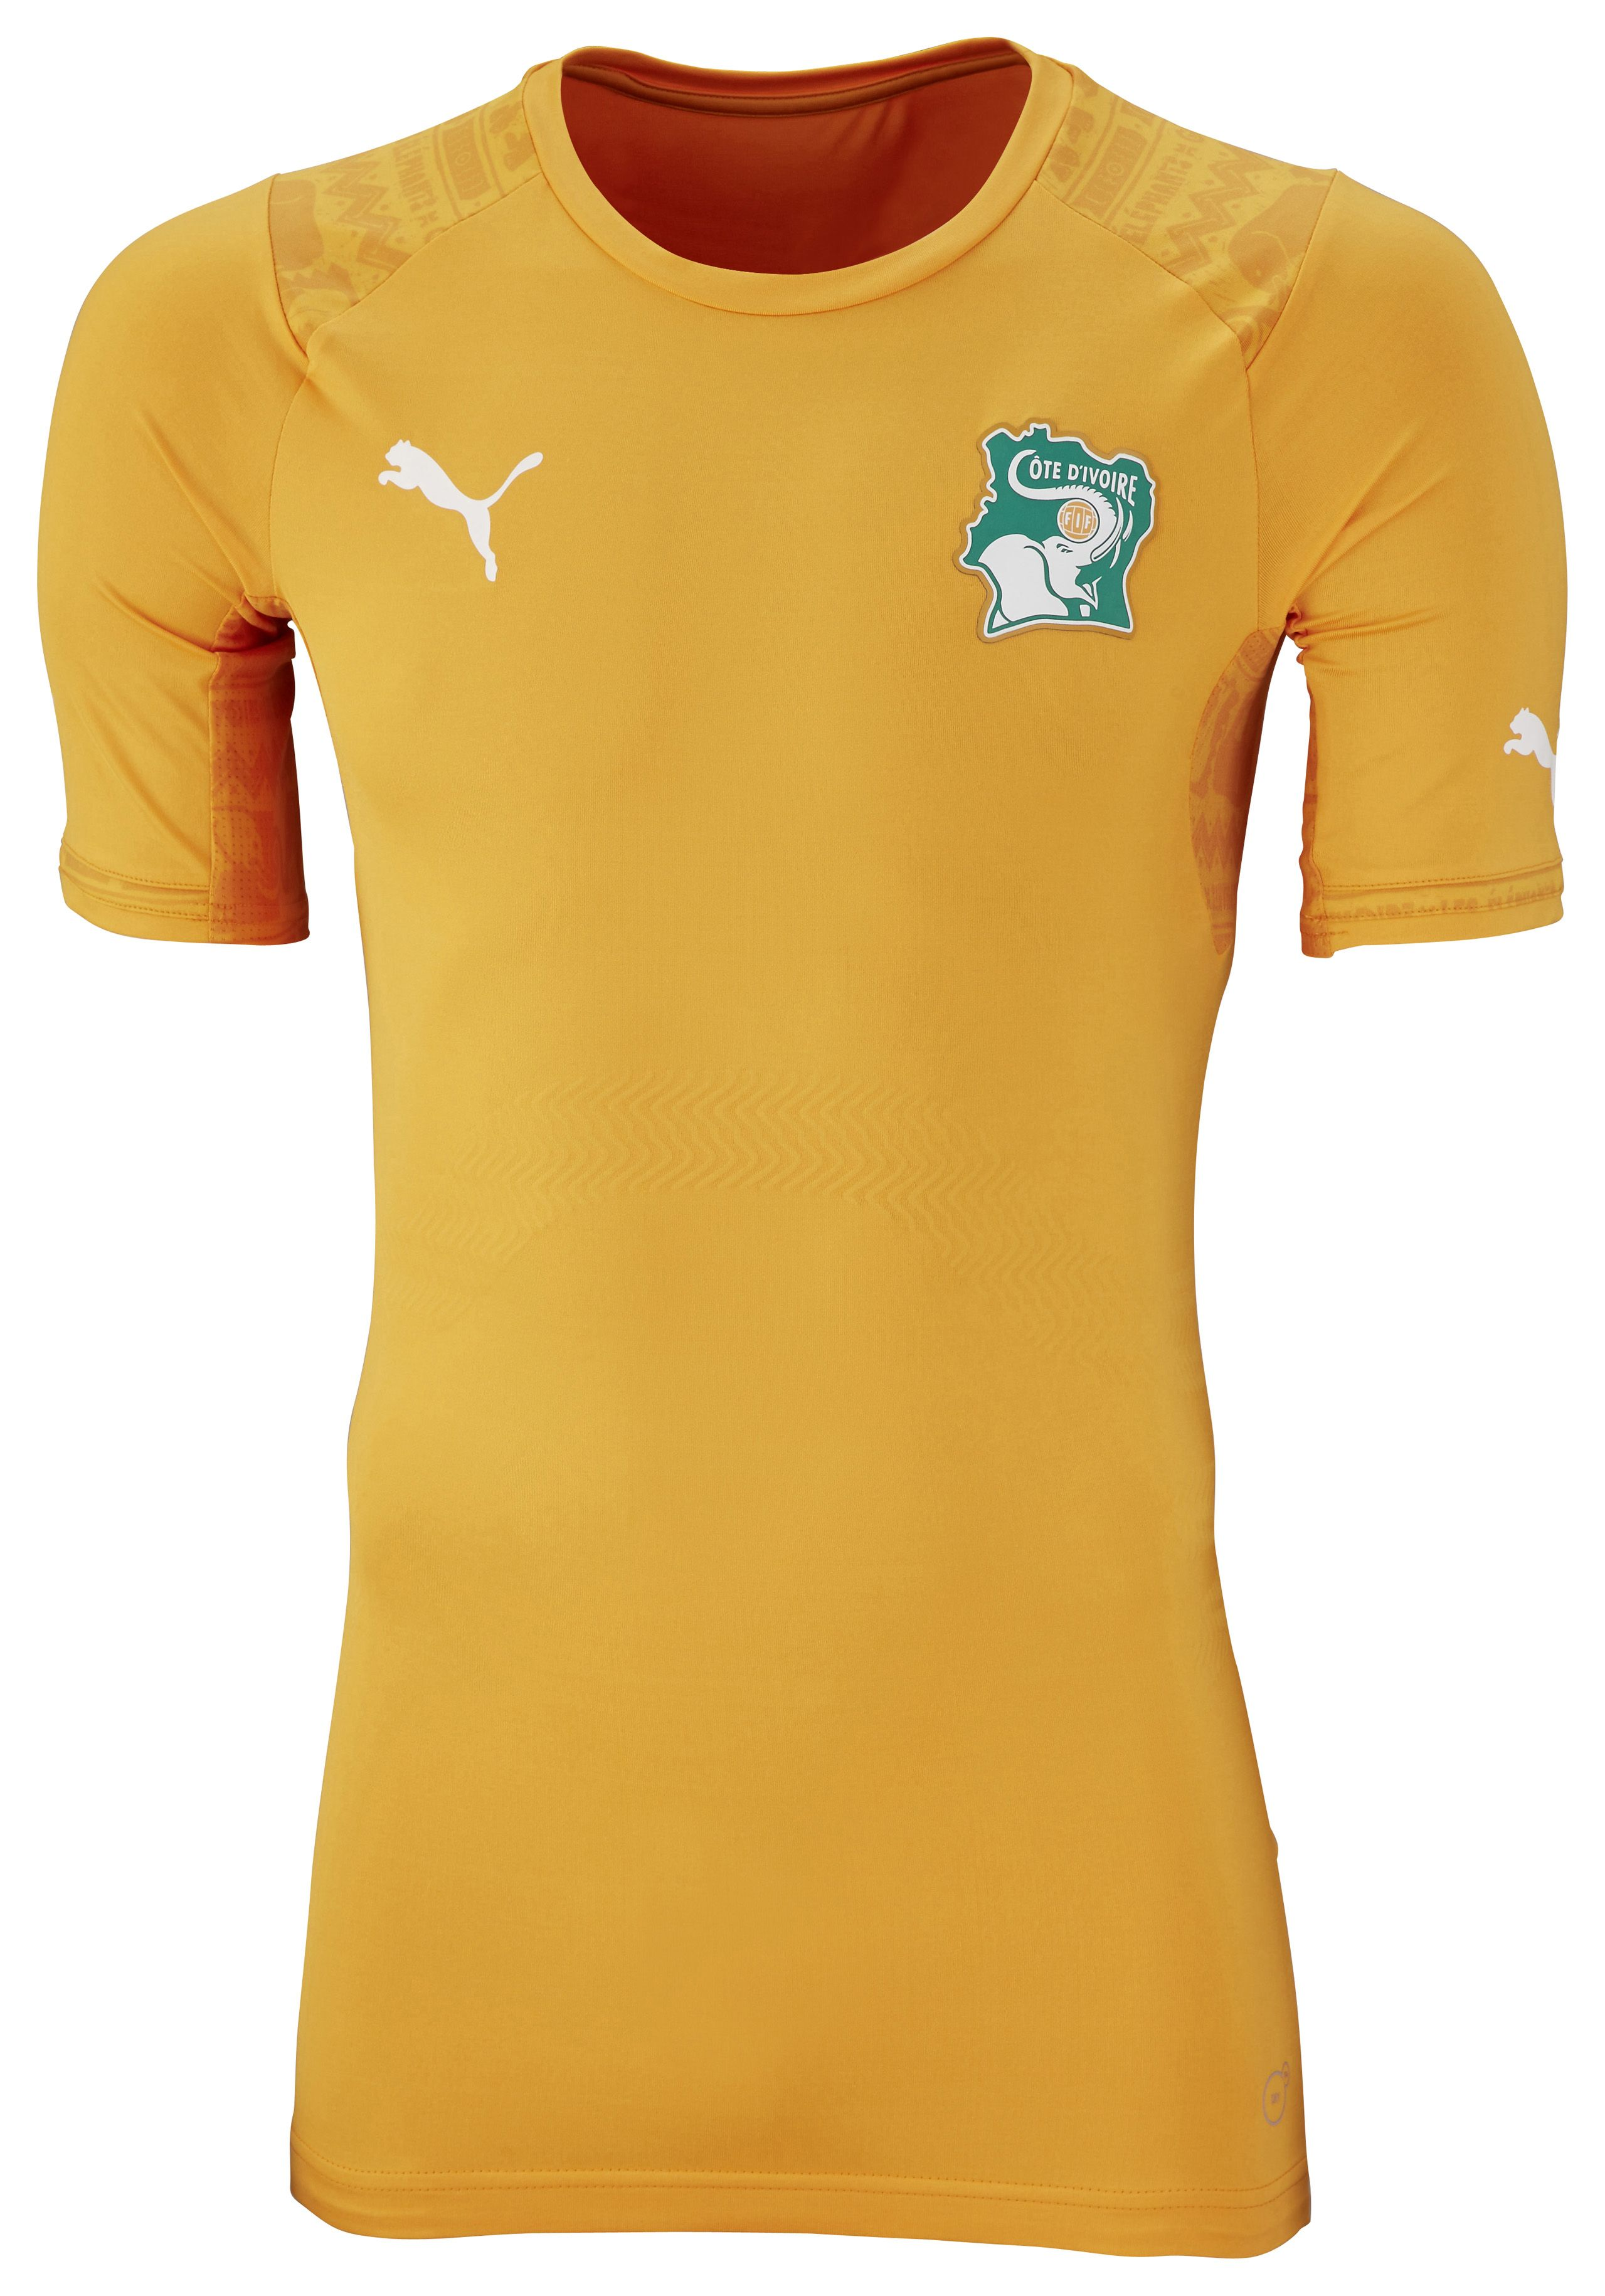 e5819ee8803 Ivory Coast World Cup jersey 2014 (Puma) | Casacas De Fútbol | World ...